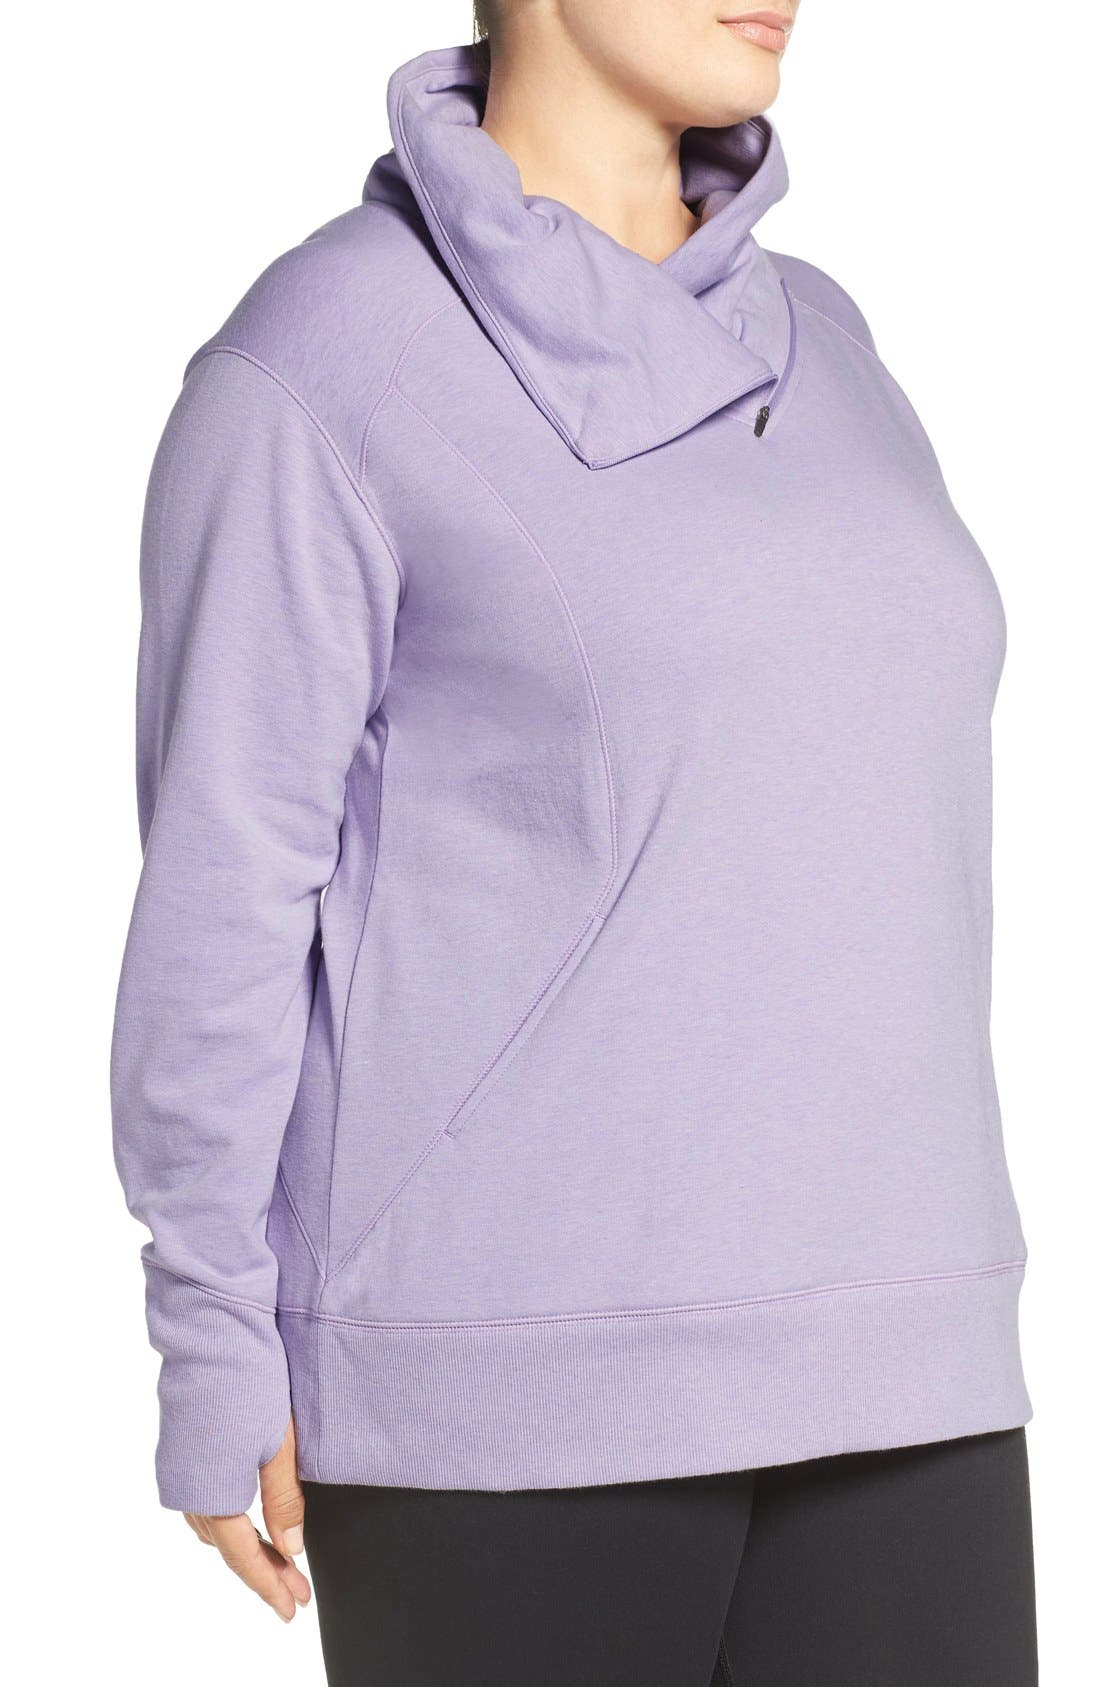 Alternate Image 3  - Zella 'Frosty' Asymmetrical Zip Pullover (Plus Size)